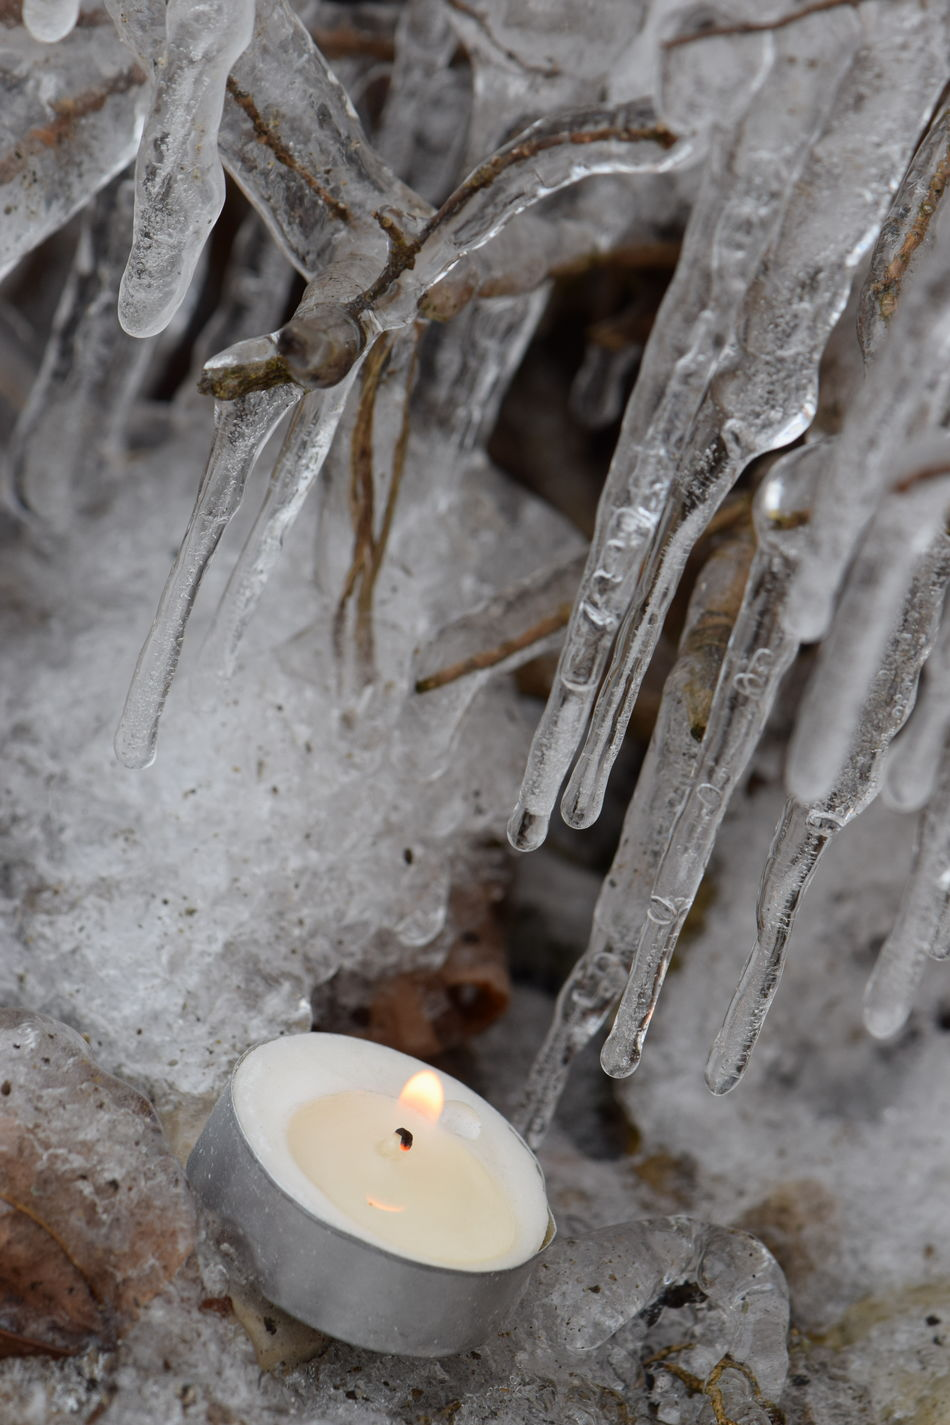 Beautiful Nature Branches Candle Fire & Ice Flame Frozen Frozen Nature Ice Ice Cycles Icy Lit Candle Macro Nature On Your Doorstep No Edit/no Filter Showcase February Tealight Twigs Winter Candle Light Fire And Ice Literalism Literally